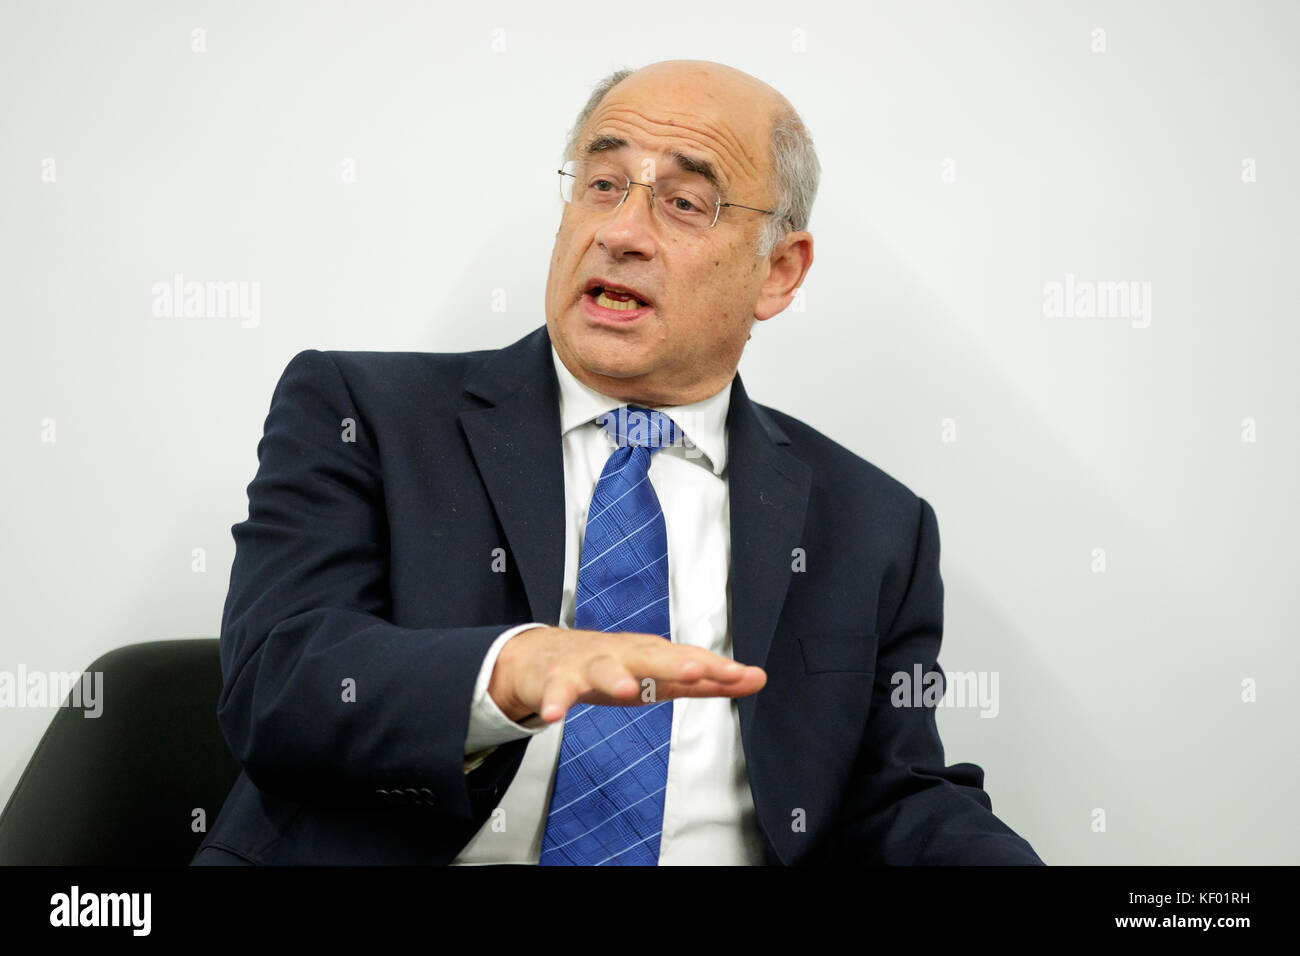 Sir Brian Leveson PC - An English judge who chaired the public inquiry into the culture, practices and ethics of - Stock Image